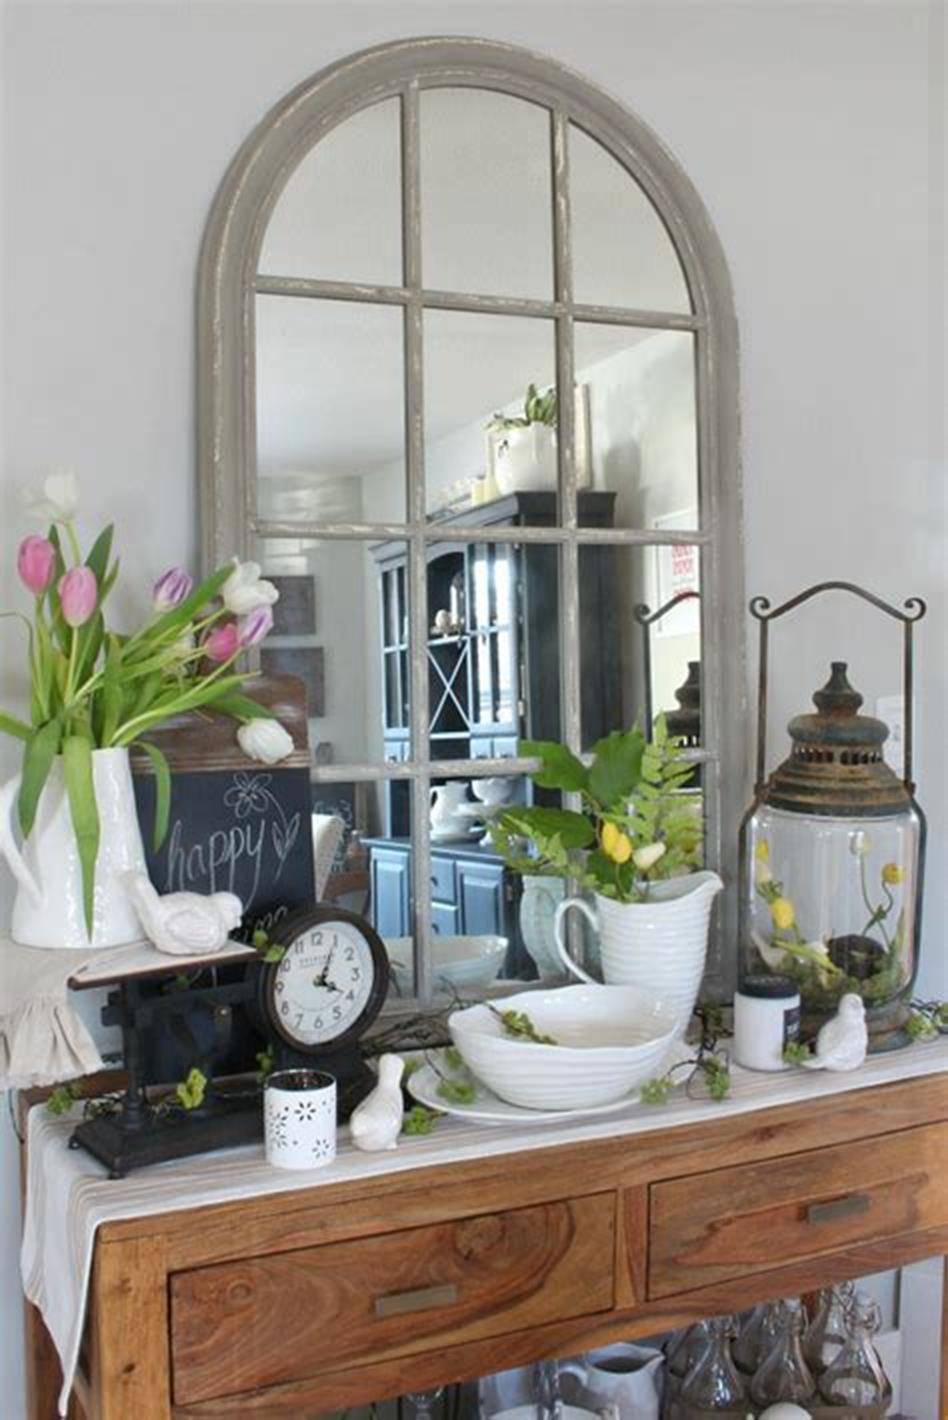 42 DIY Beautiful Vintage Spring Decorations Ideas You Will Love 42